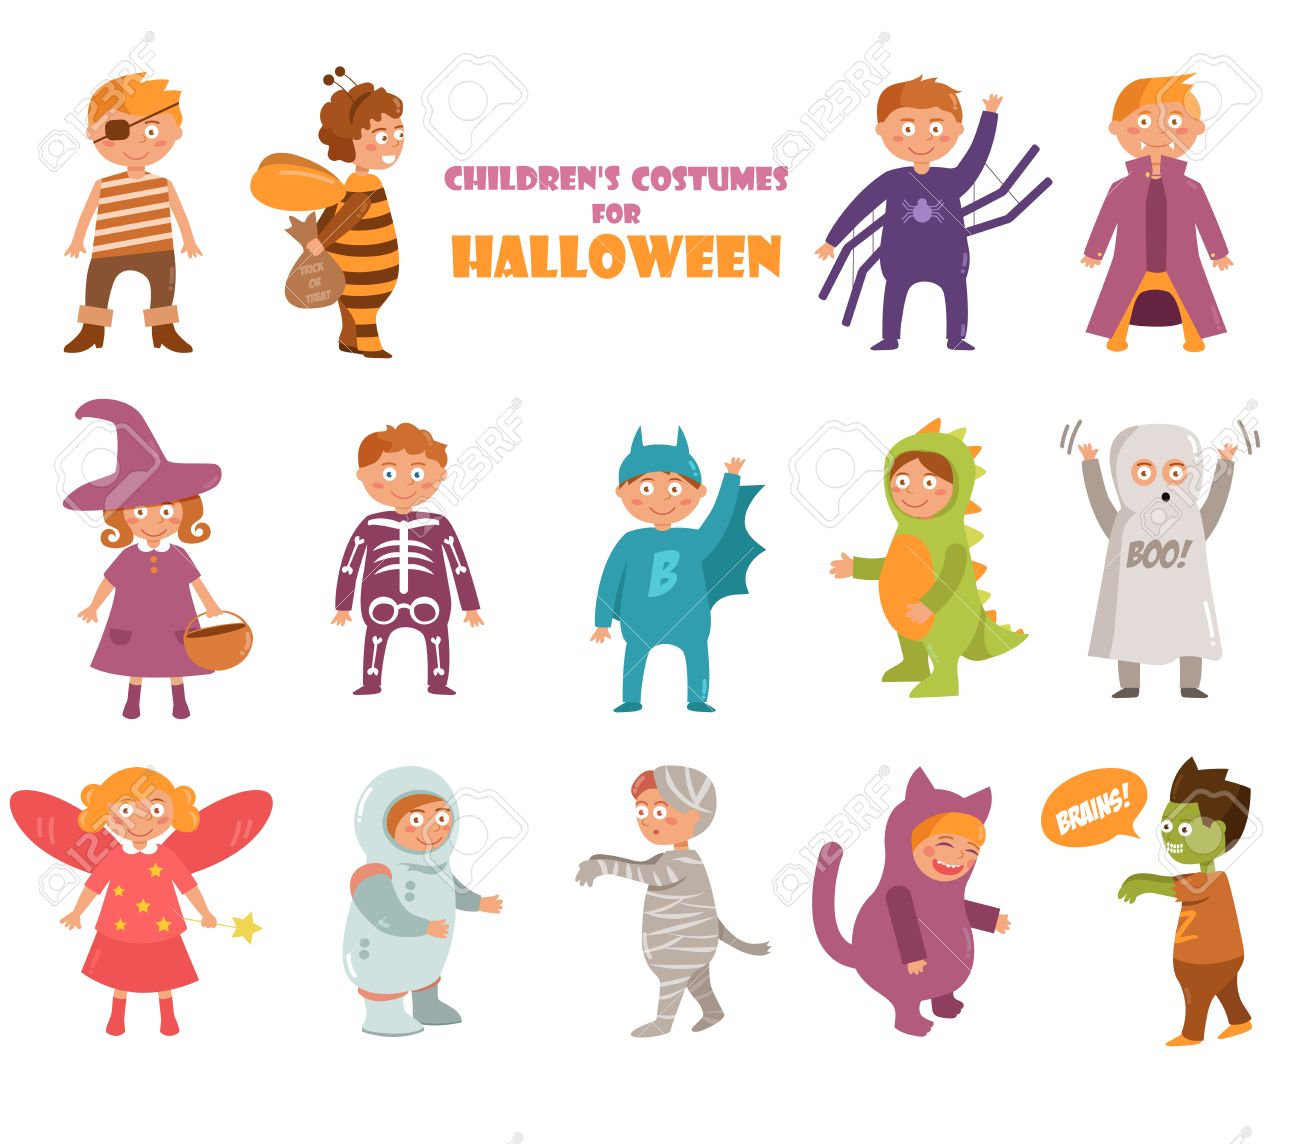 Kids costumes on Halloween  Pirate, bee, spider, vampire, witch,